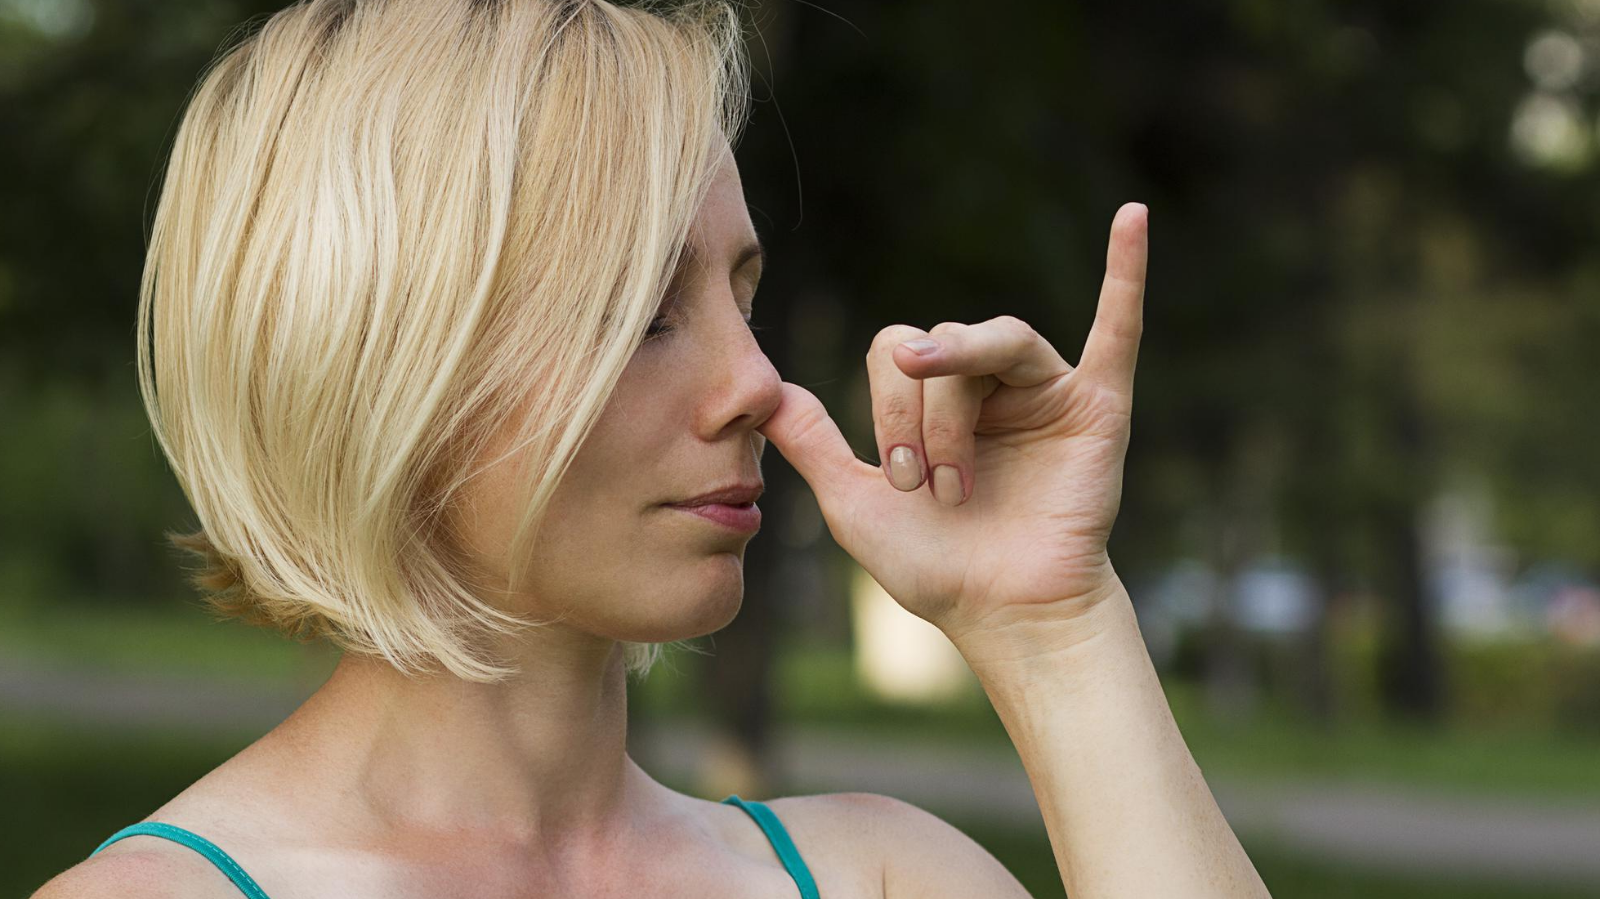 A woman practicing pranayama breathing during yoga practice to experience the benefits of reduced stress and anxiety